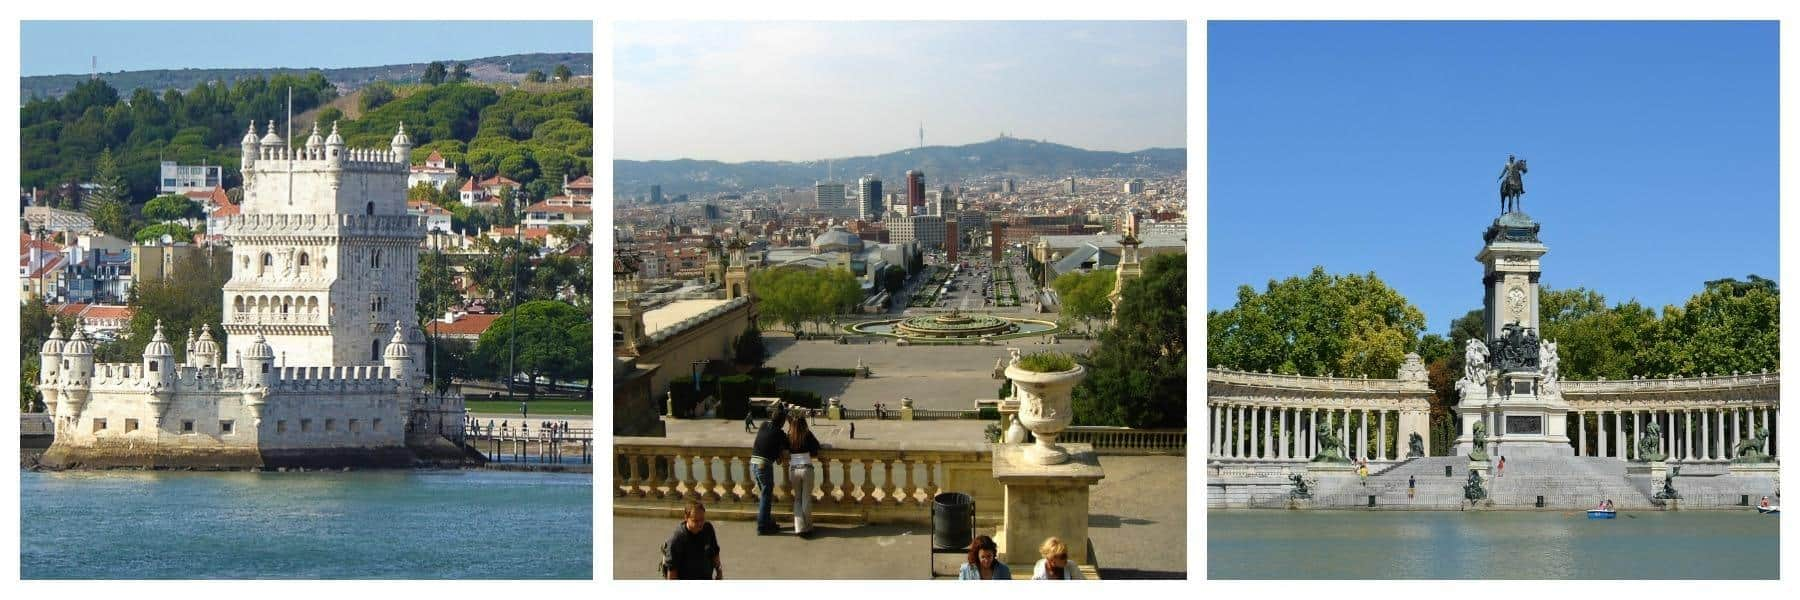 Two weeks in Europe itinerary idea